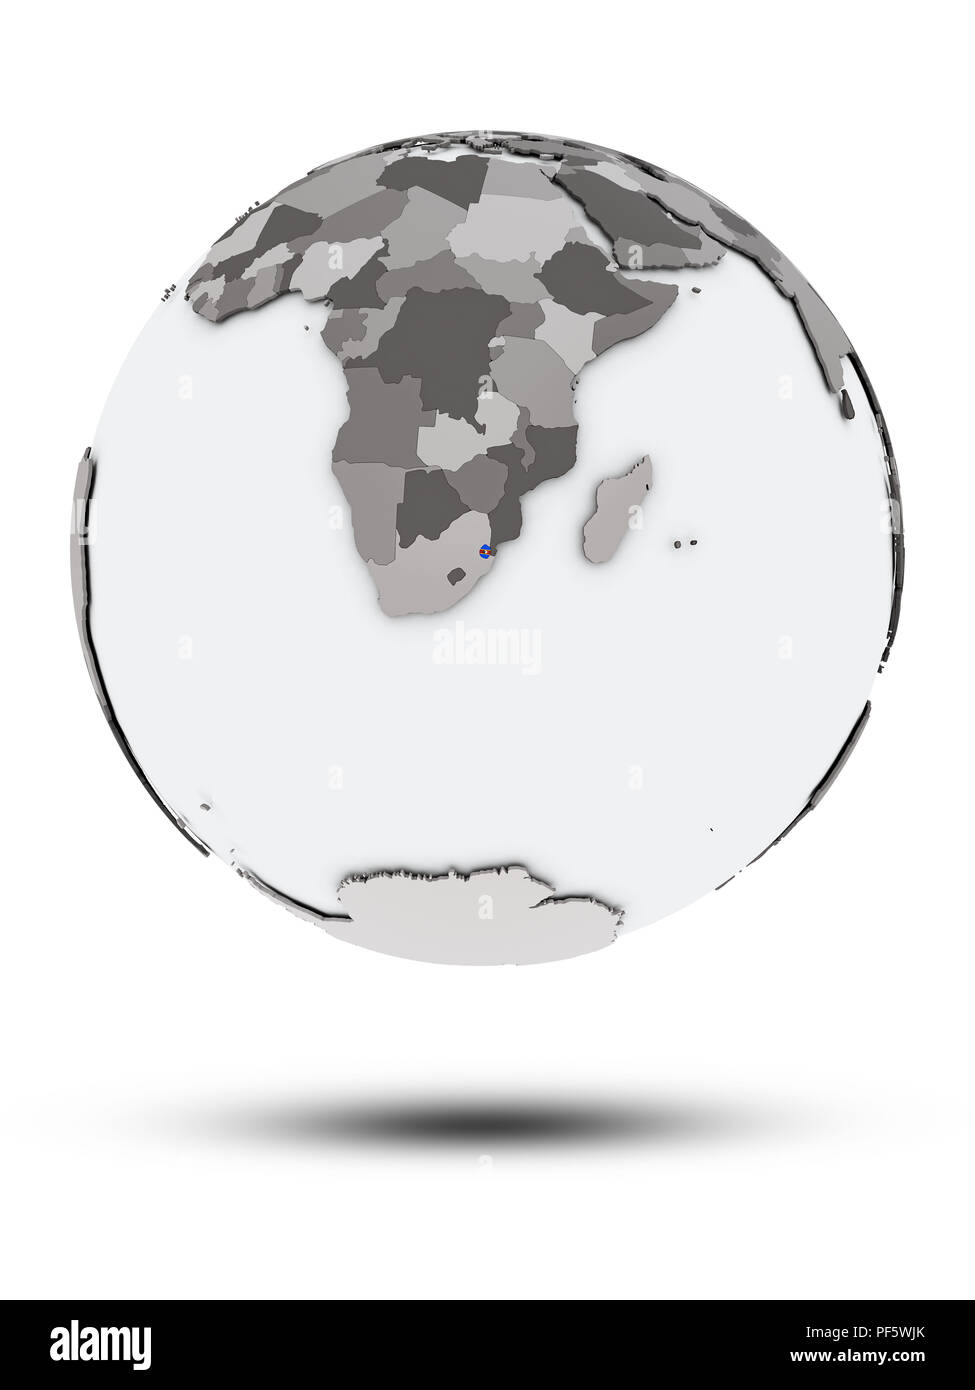 Swaziland with flag on globe with shadow isolated on white background. 3D illustration. Stock Photo